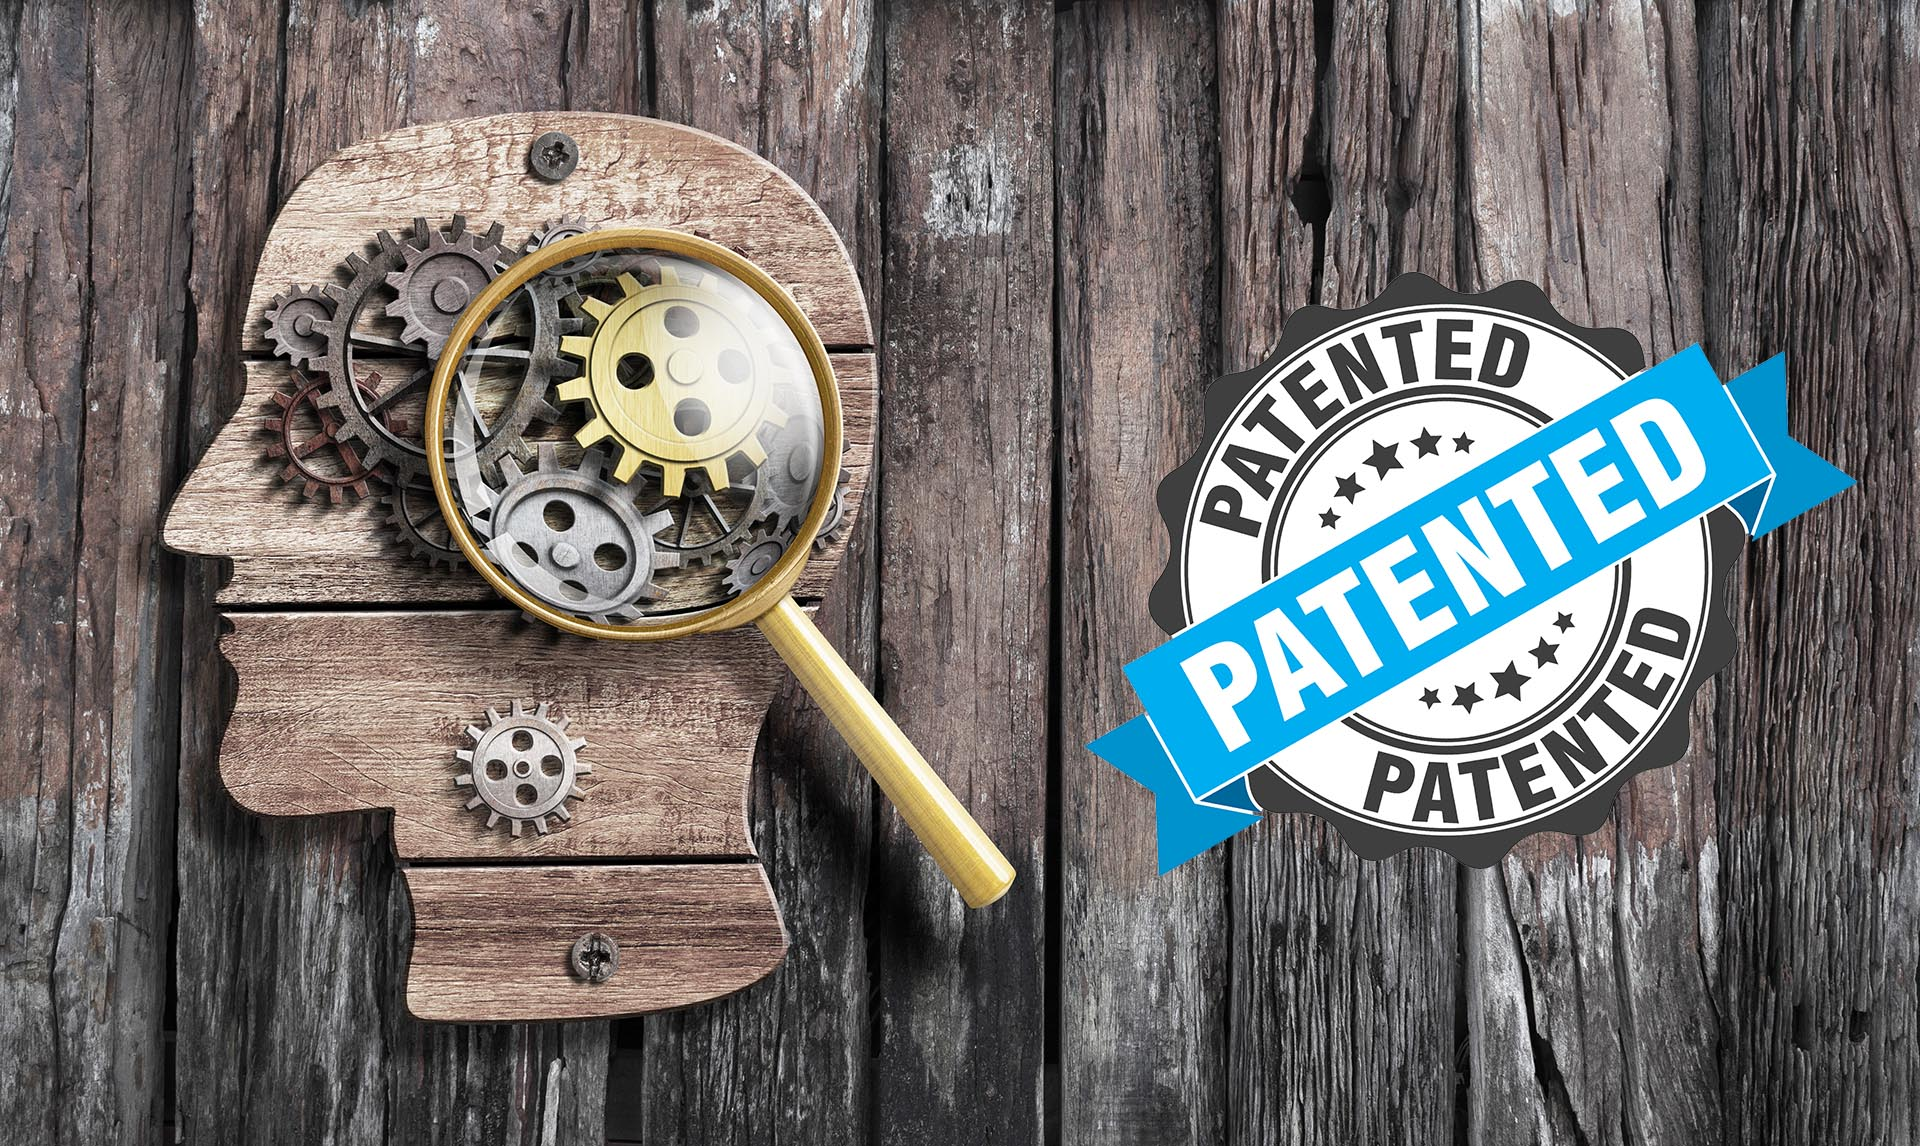 Different Types of Patents offered by the USPTO